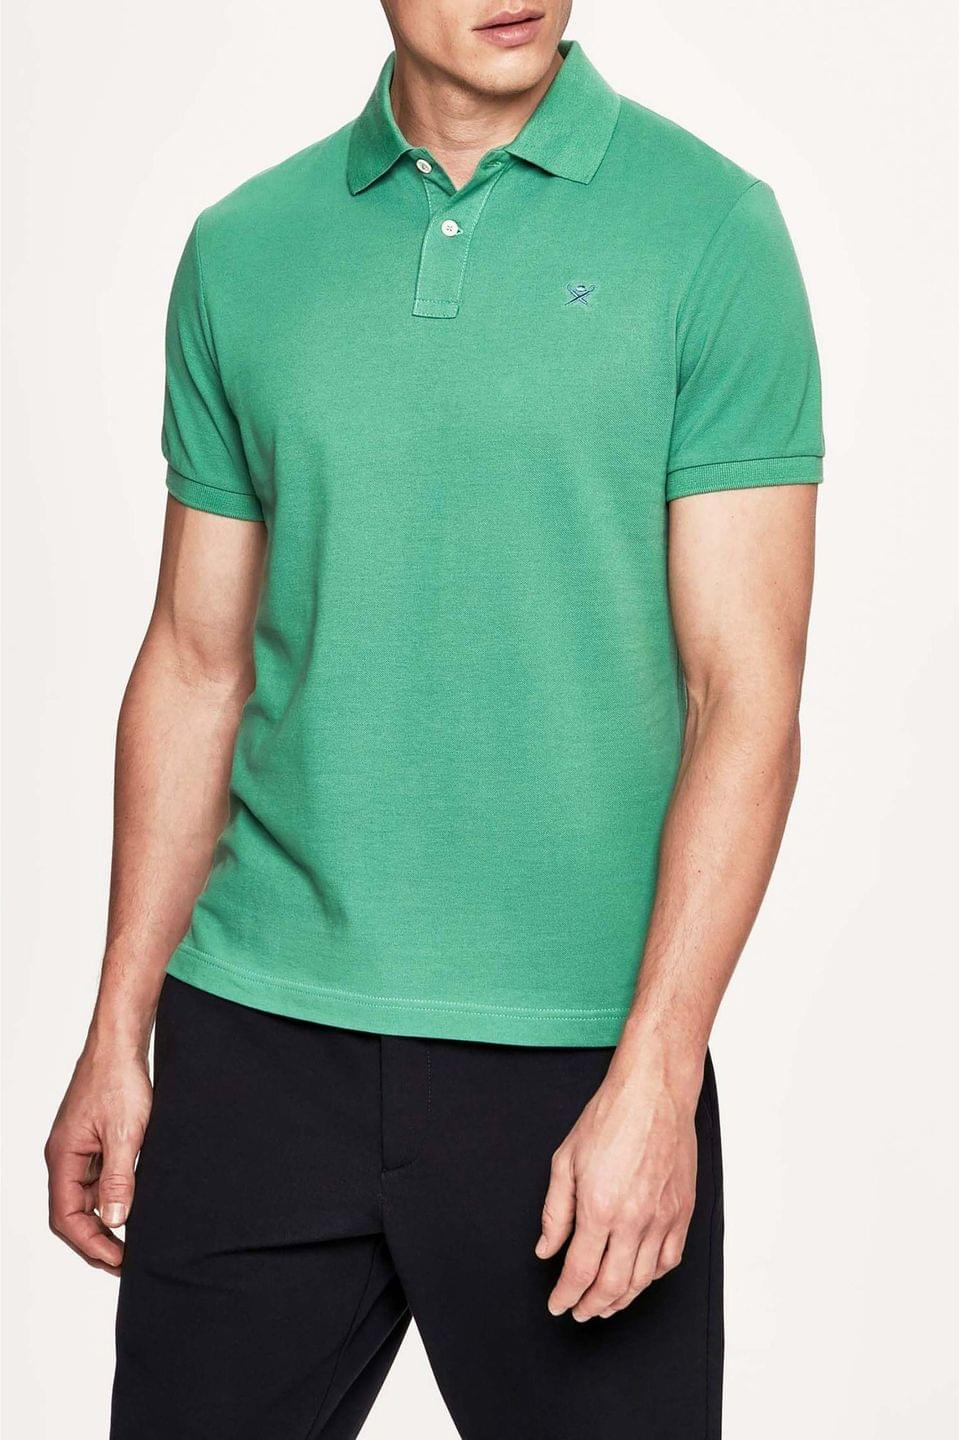 Men's Hackett London Green Slim Fit Short Sleeved Polo